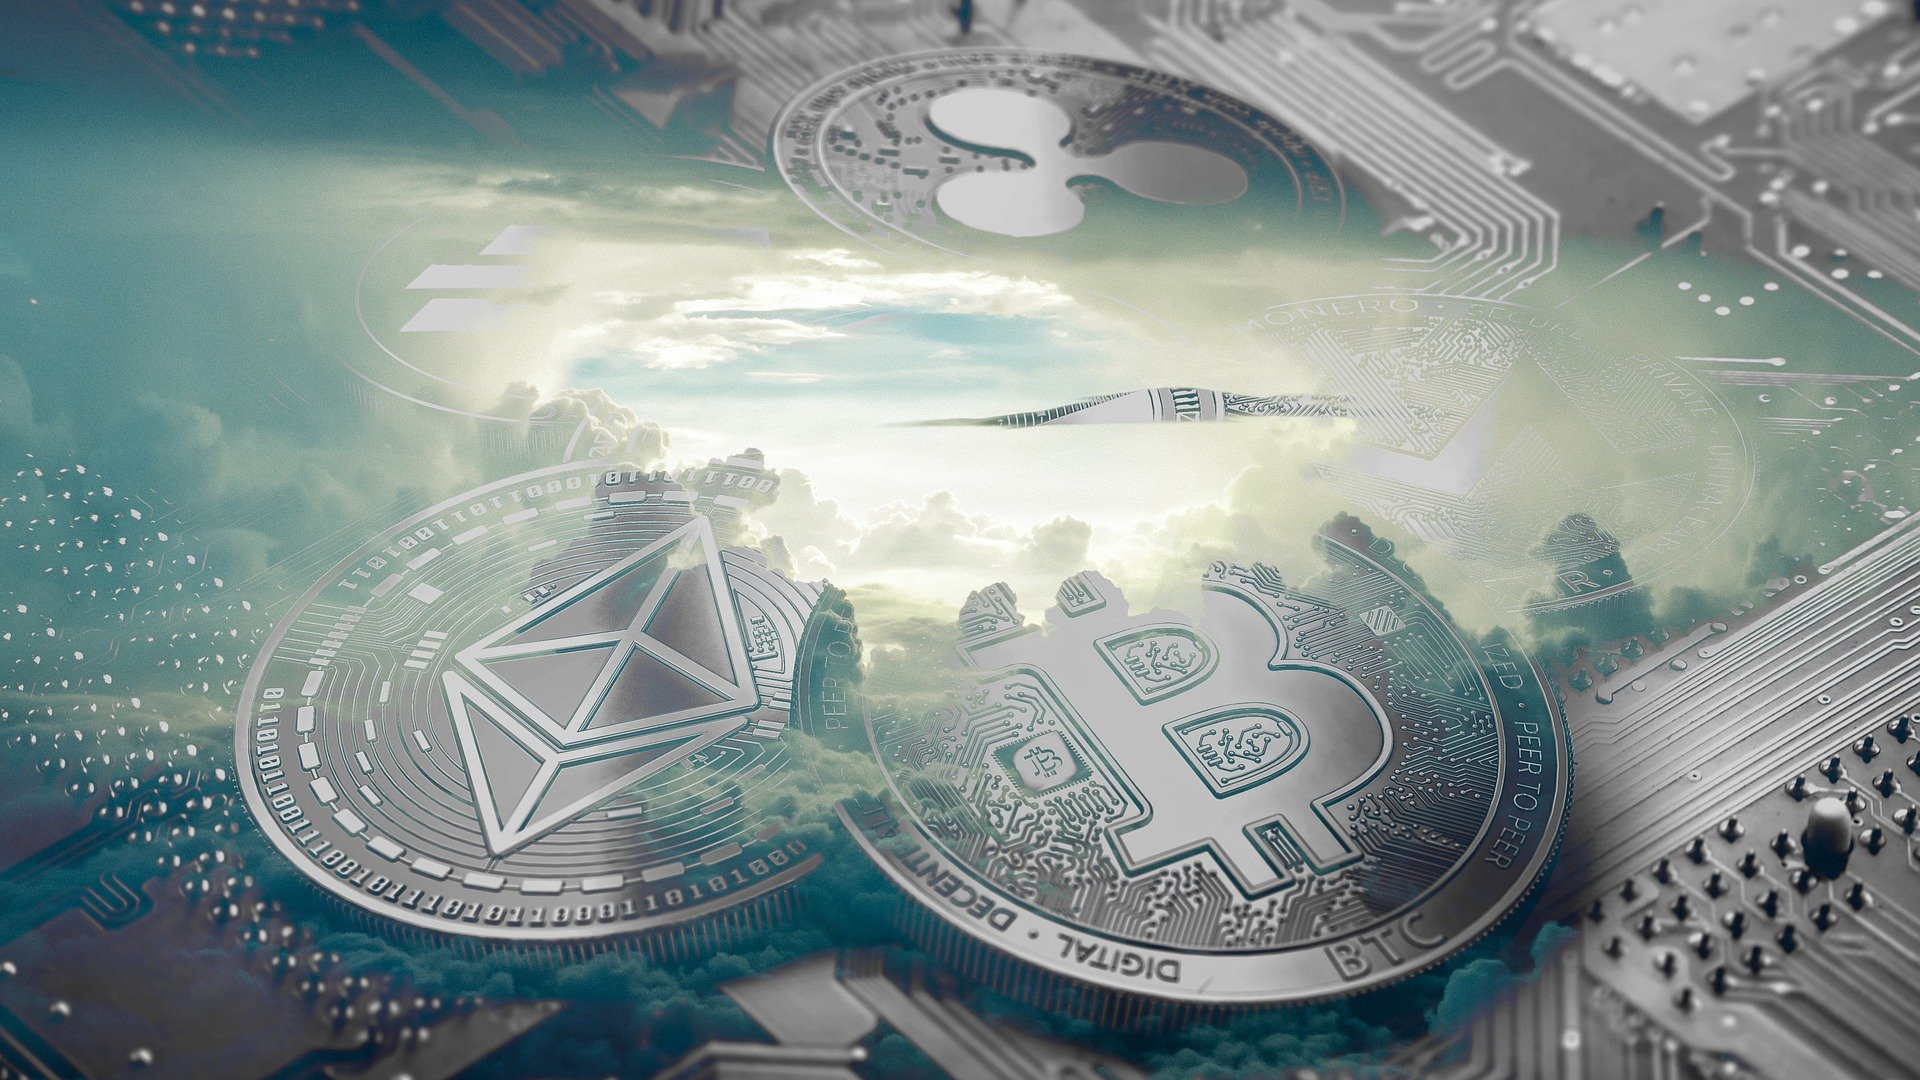 Ethereum (ETH) and Ripple (XRP) are Securities, Bitcoin is Not, Predicts Expert